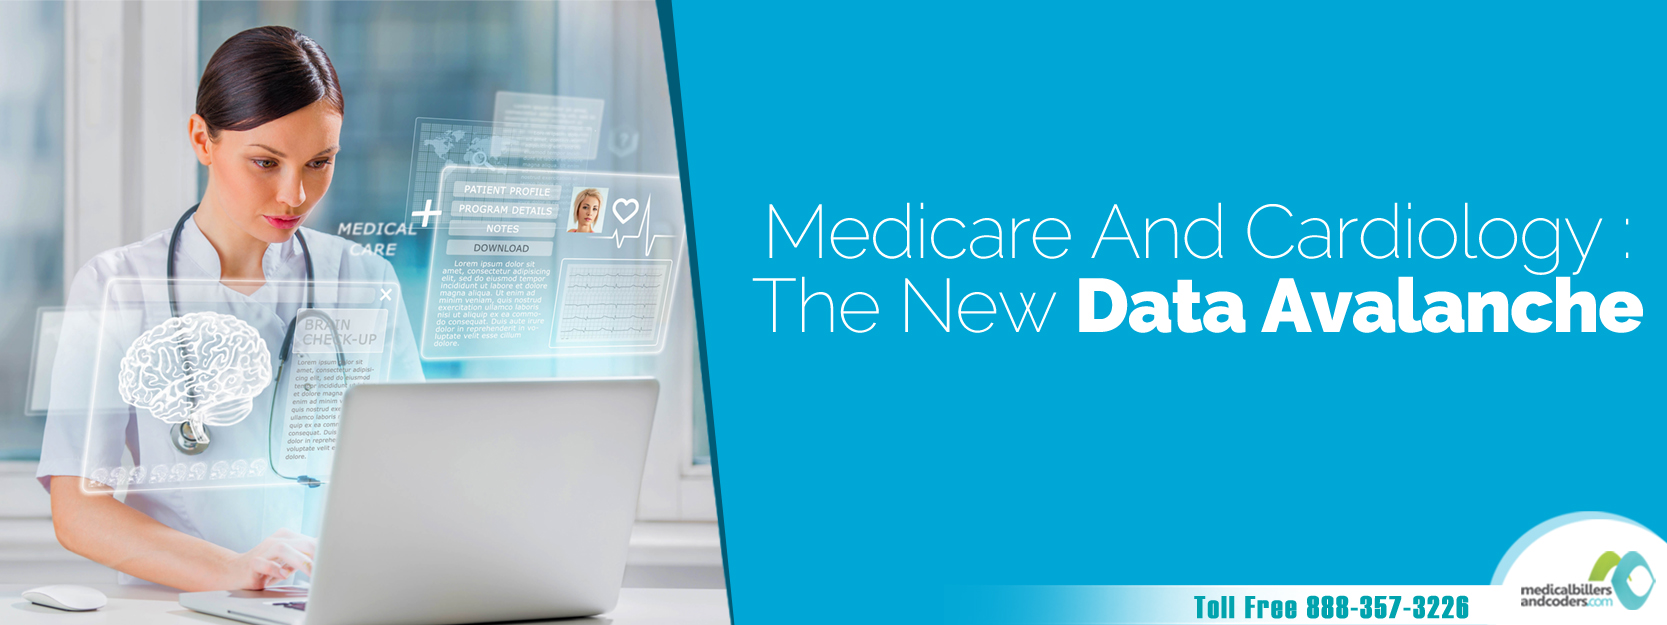 Medicare and Cardiology: The New Data Avalanche